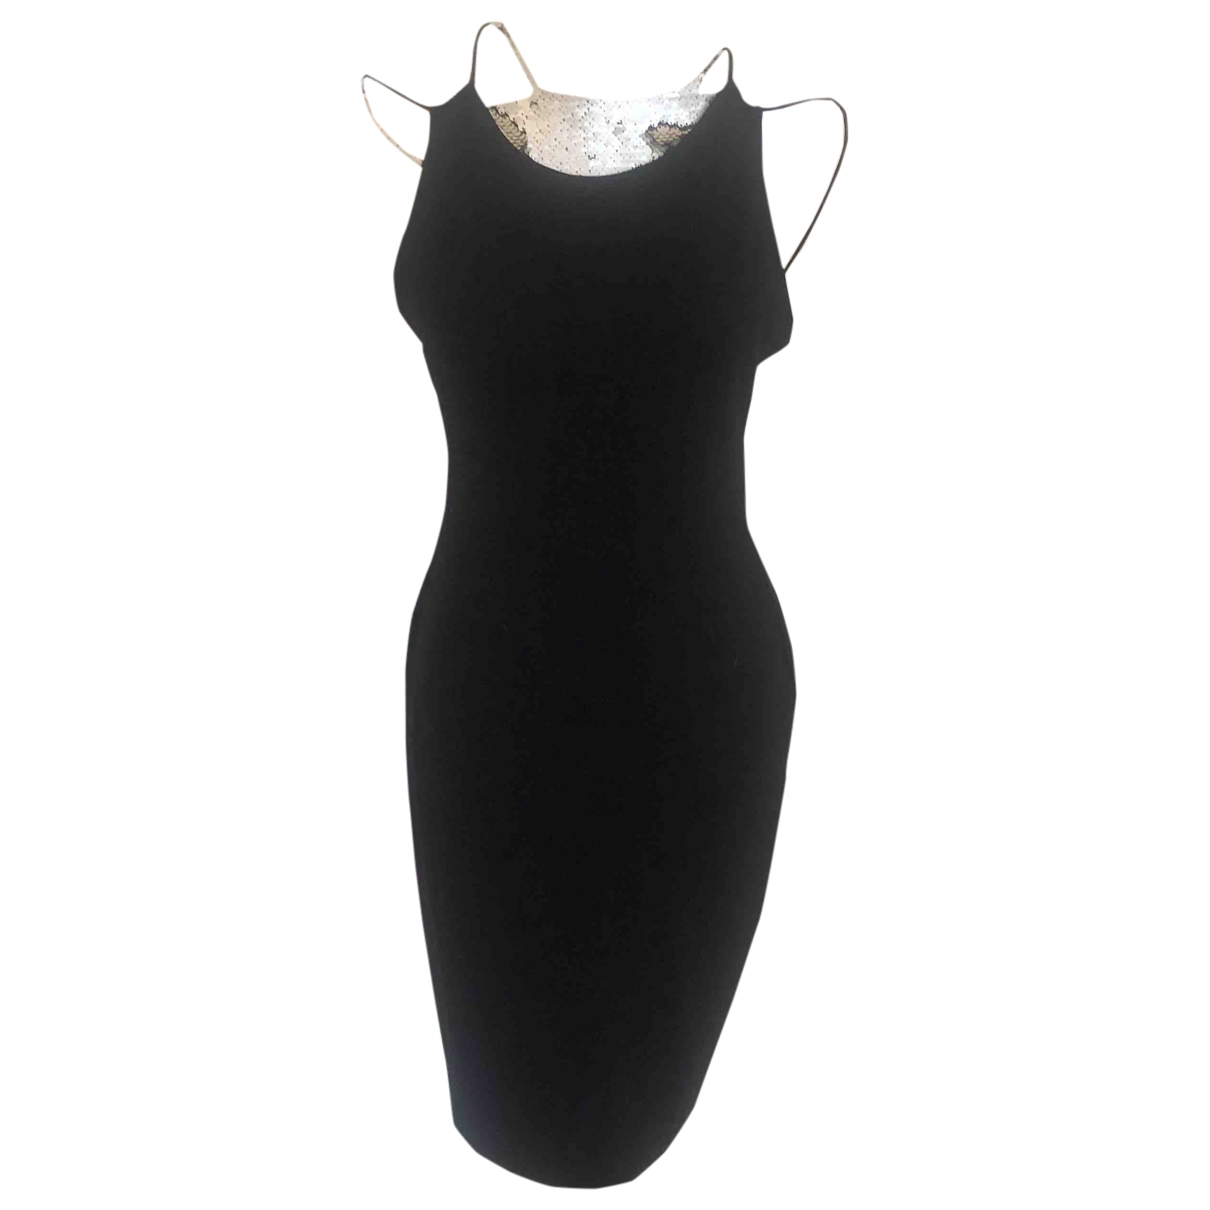 French Connection \N Black Cotton - elasthane dress for Women 12 UK